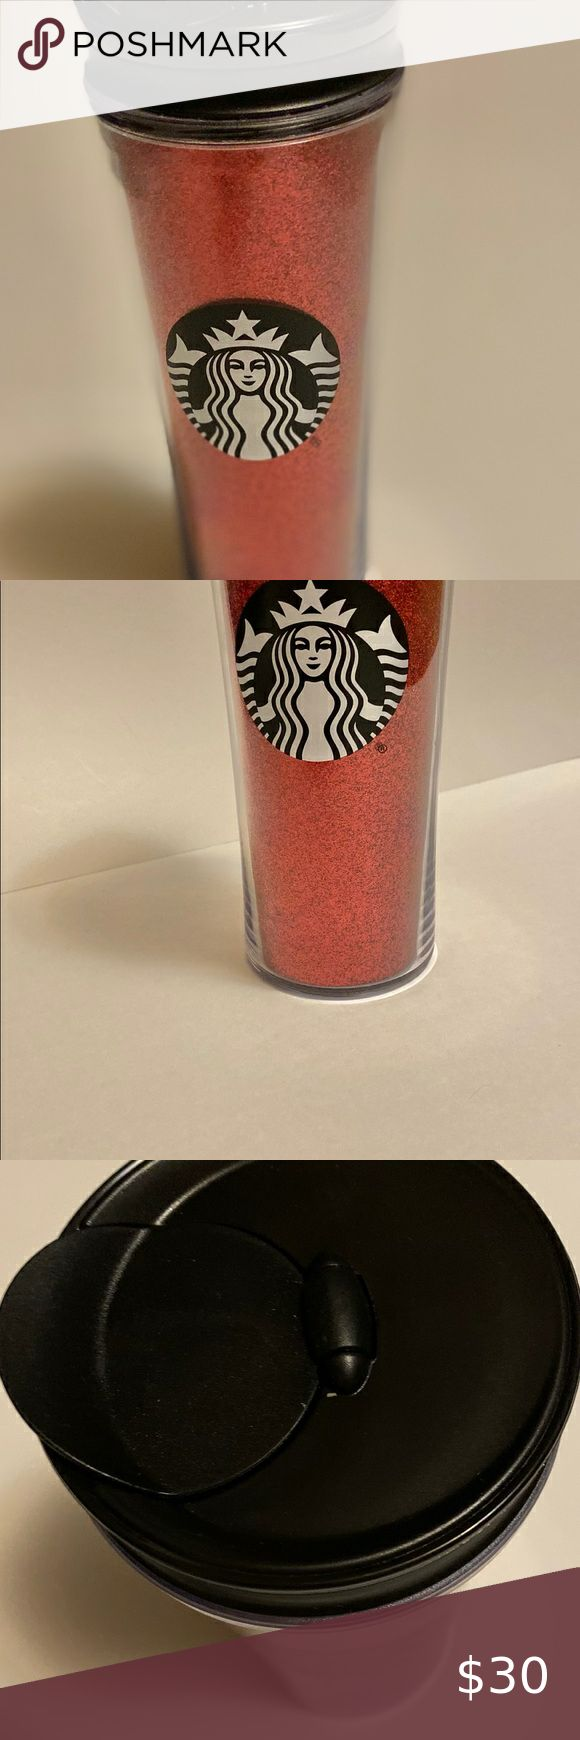 Starbucks 2019 Holiday Design Insulated Coffee Cup in 2020 ...